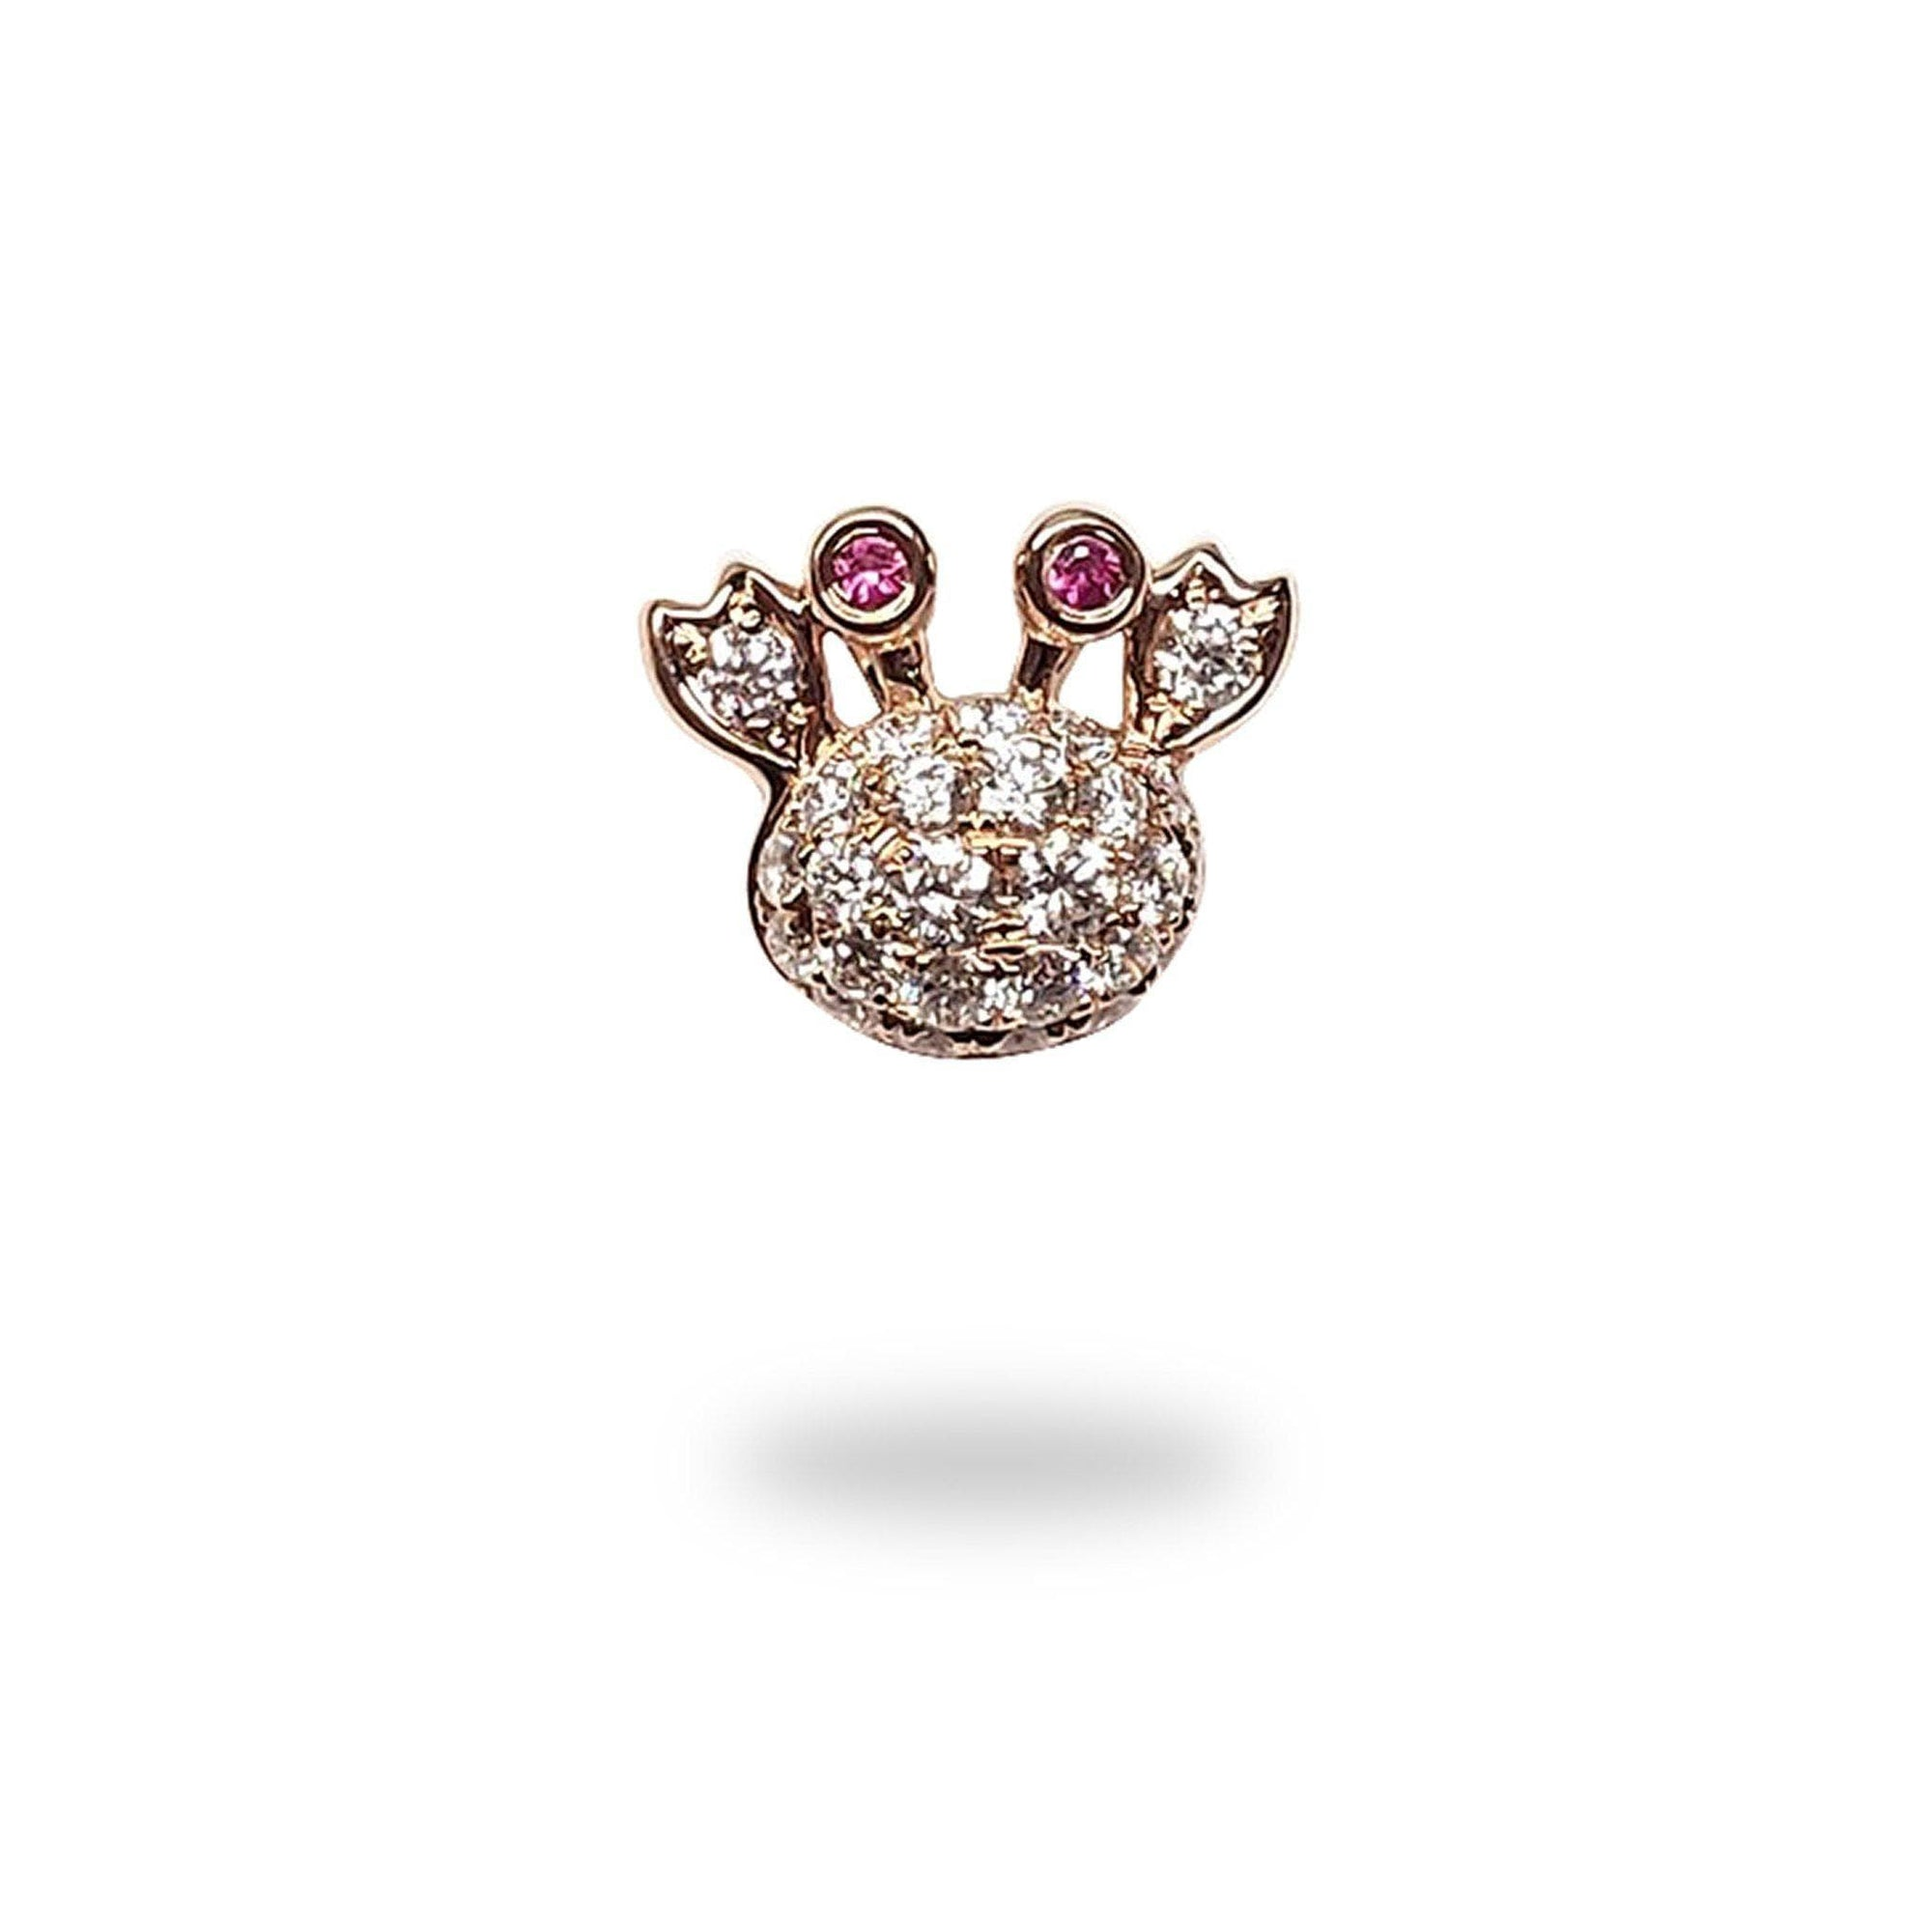 Crab Pink Sapphire Pendant with Diamonds in 14K Rose Gold - Maui Divers Jewelry